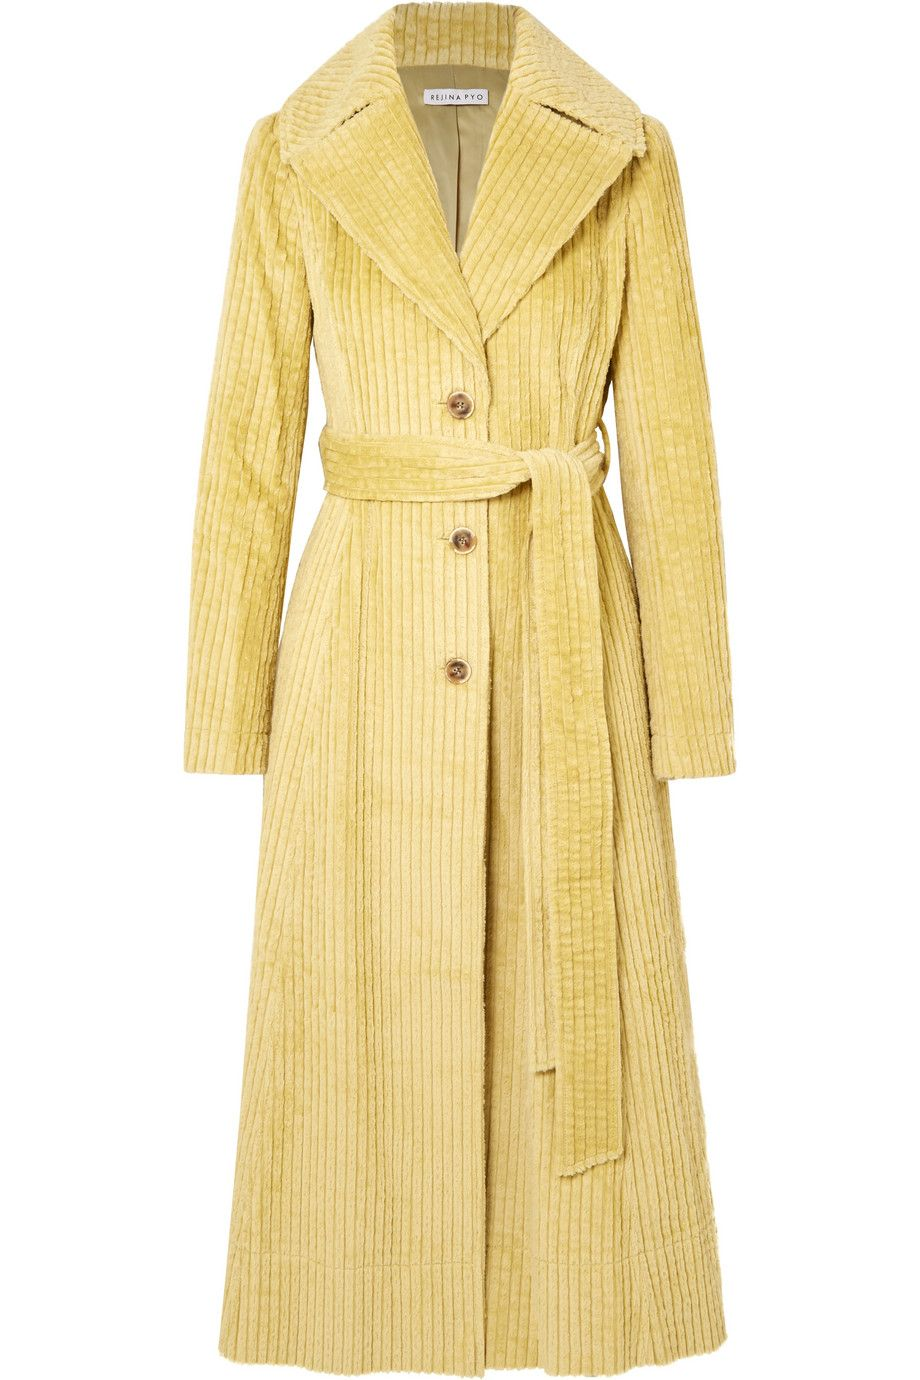 rejina-pyo-rhea-pale-yellow-cotton-corduroy-trench-coat